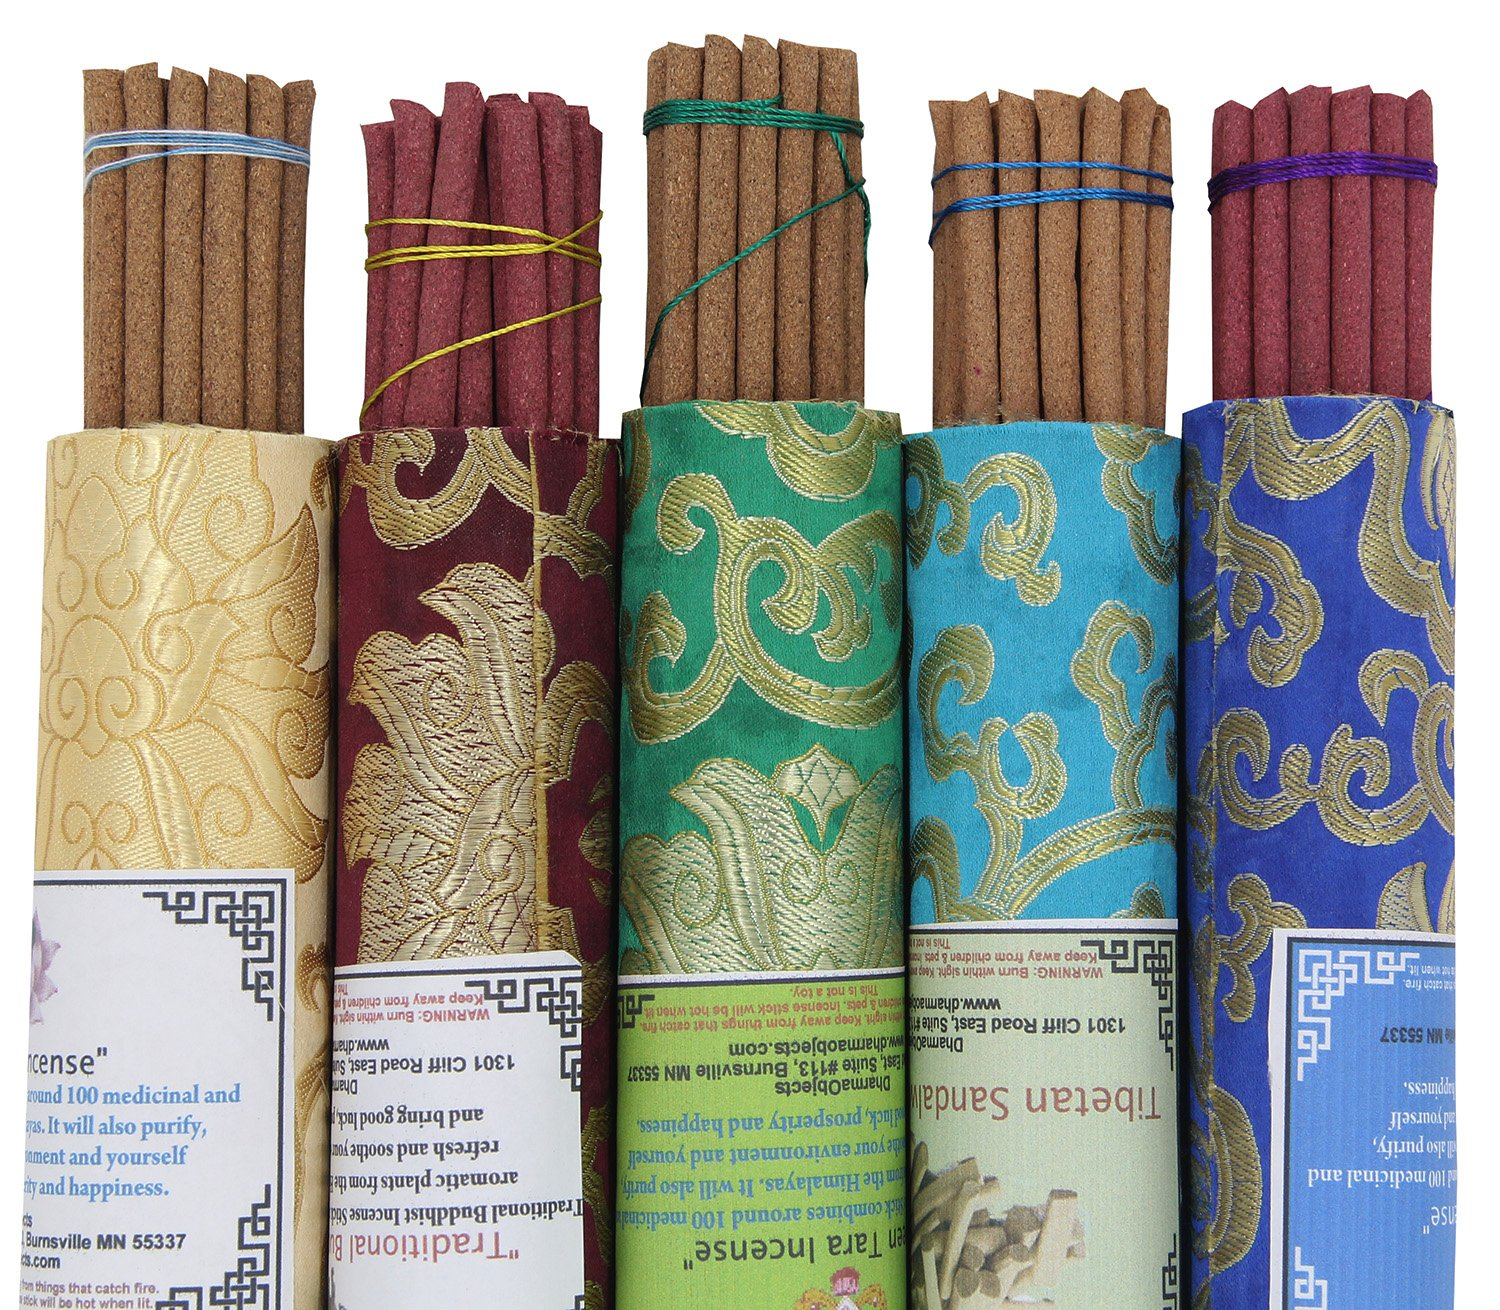 DharmaObjects 5 Packs Variety Tibetan Spiritual and Medicinal Incense Sticks by DharmaObjects (Image #3)